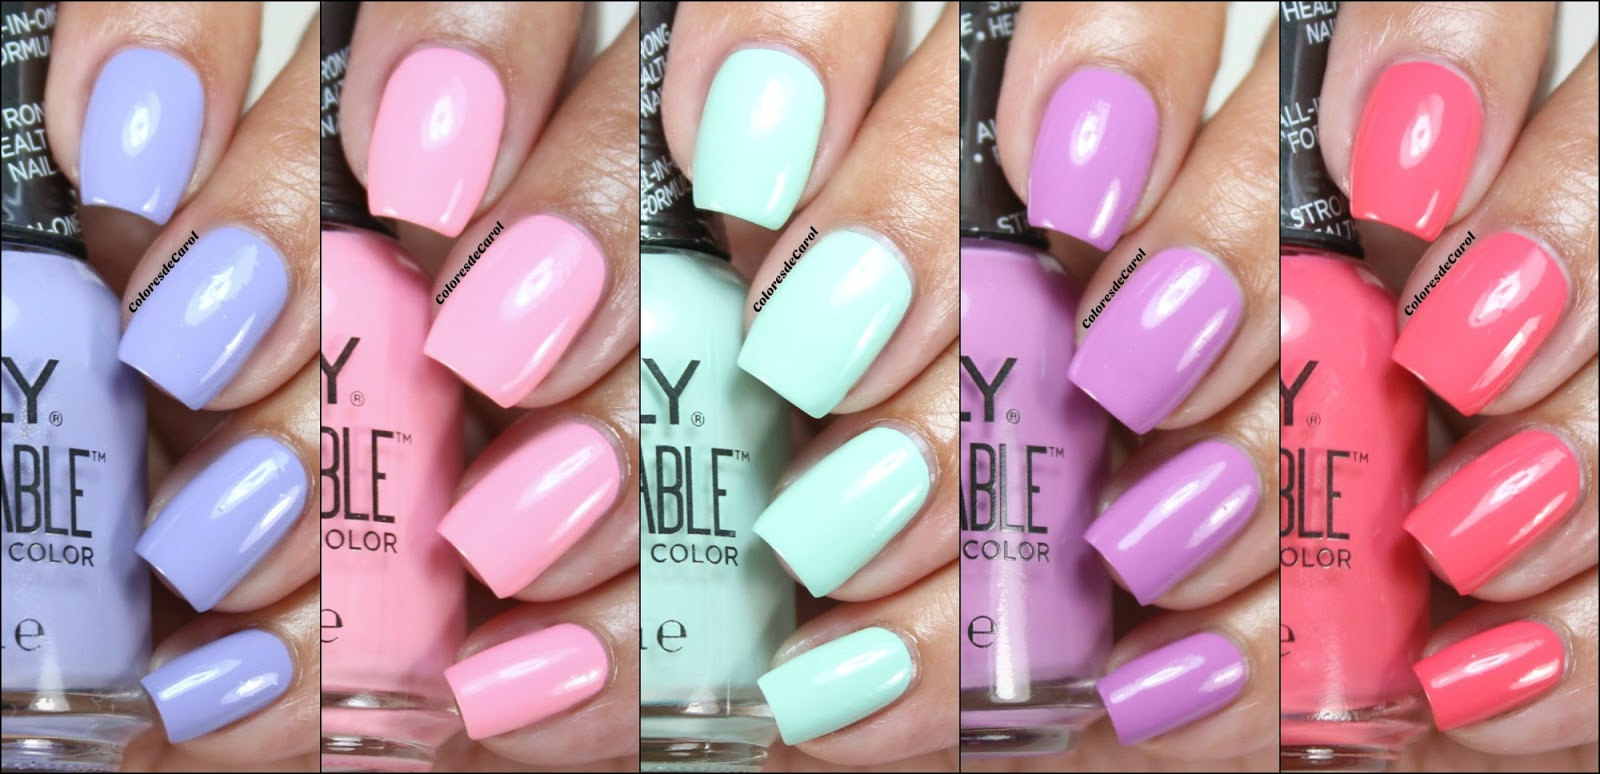 I Have Five Shades To Show You Lied Two Coats Of Each Color Directly On My Nails Didn T Use A Base Or Top Coat All These Easily